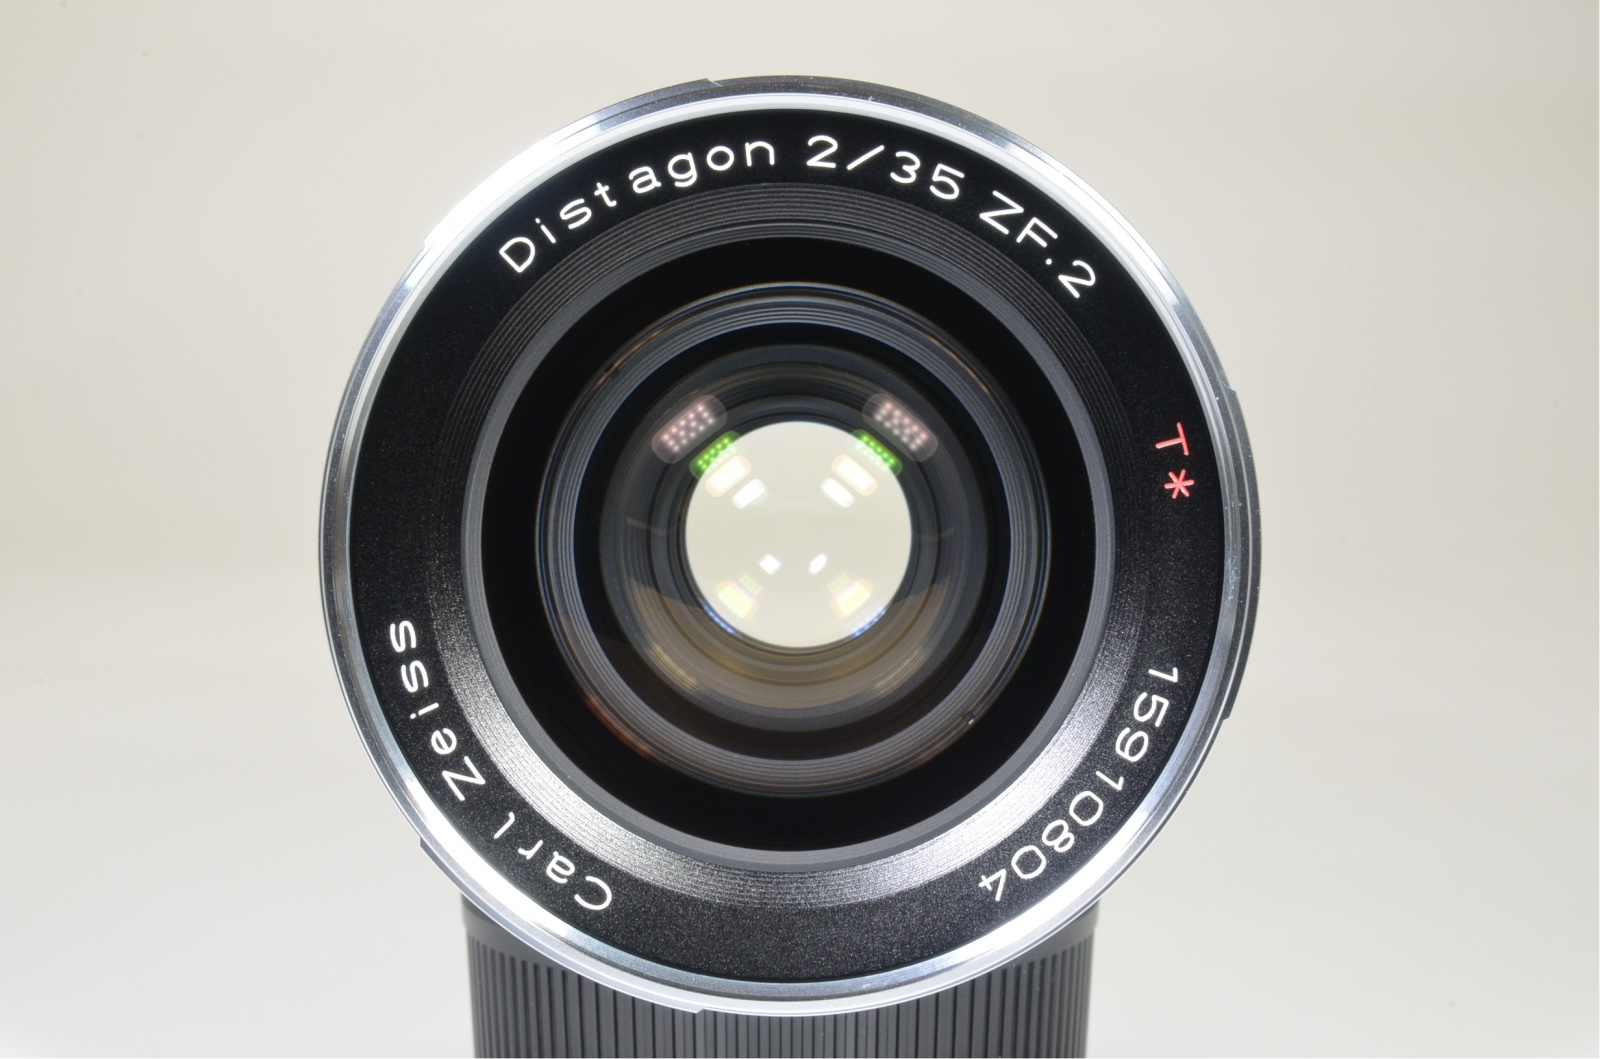 carl zeiss distagon t* 35mm f2 zf.2 lens for nikon f mount never used top mint